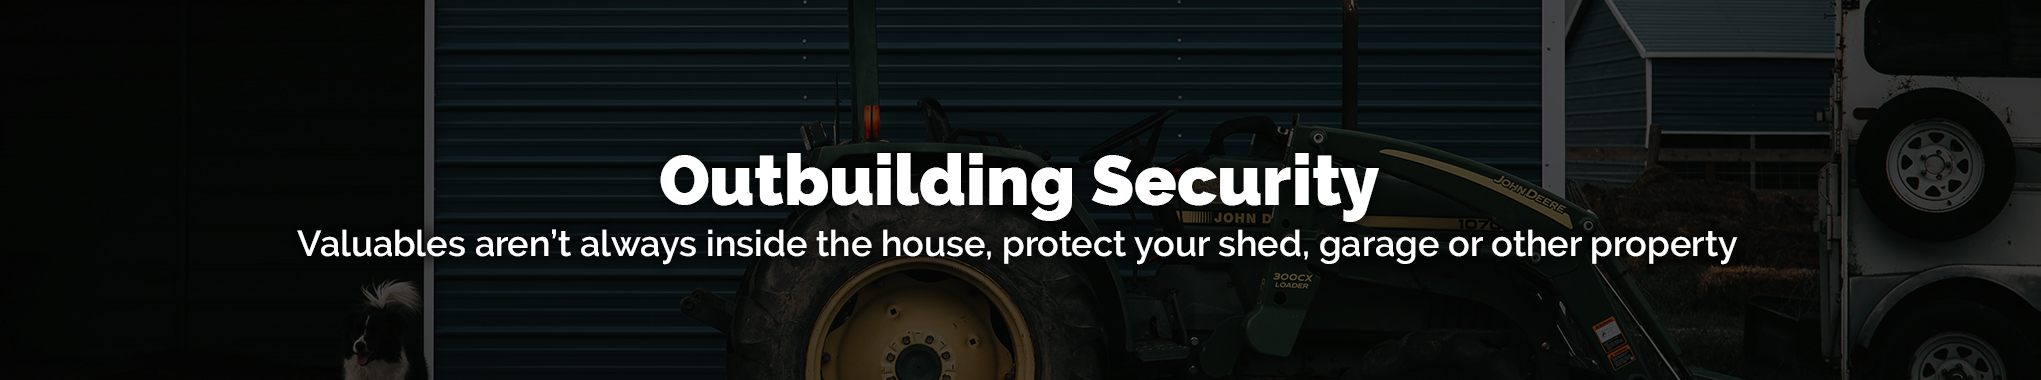 Outbuilding Security